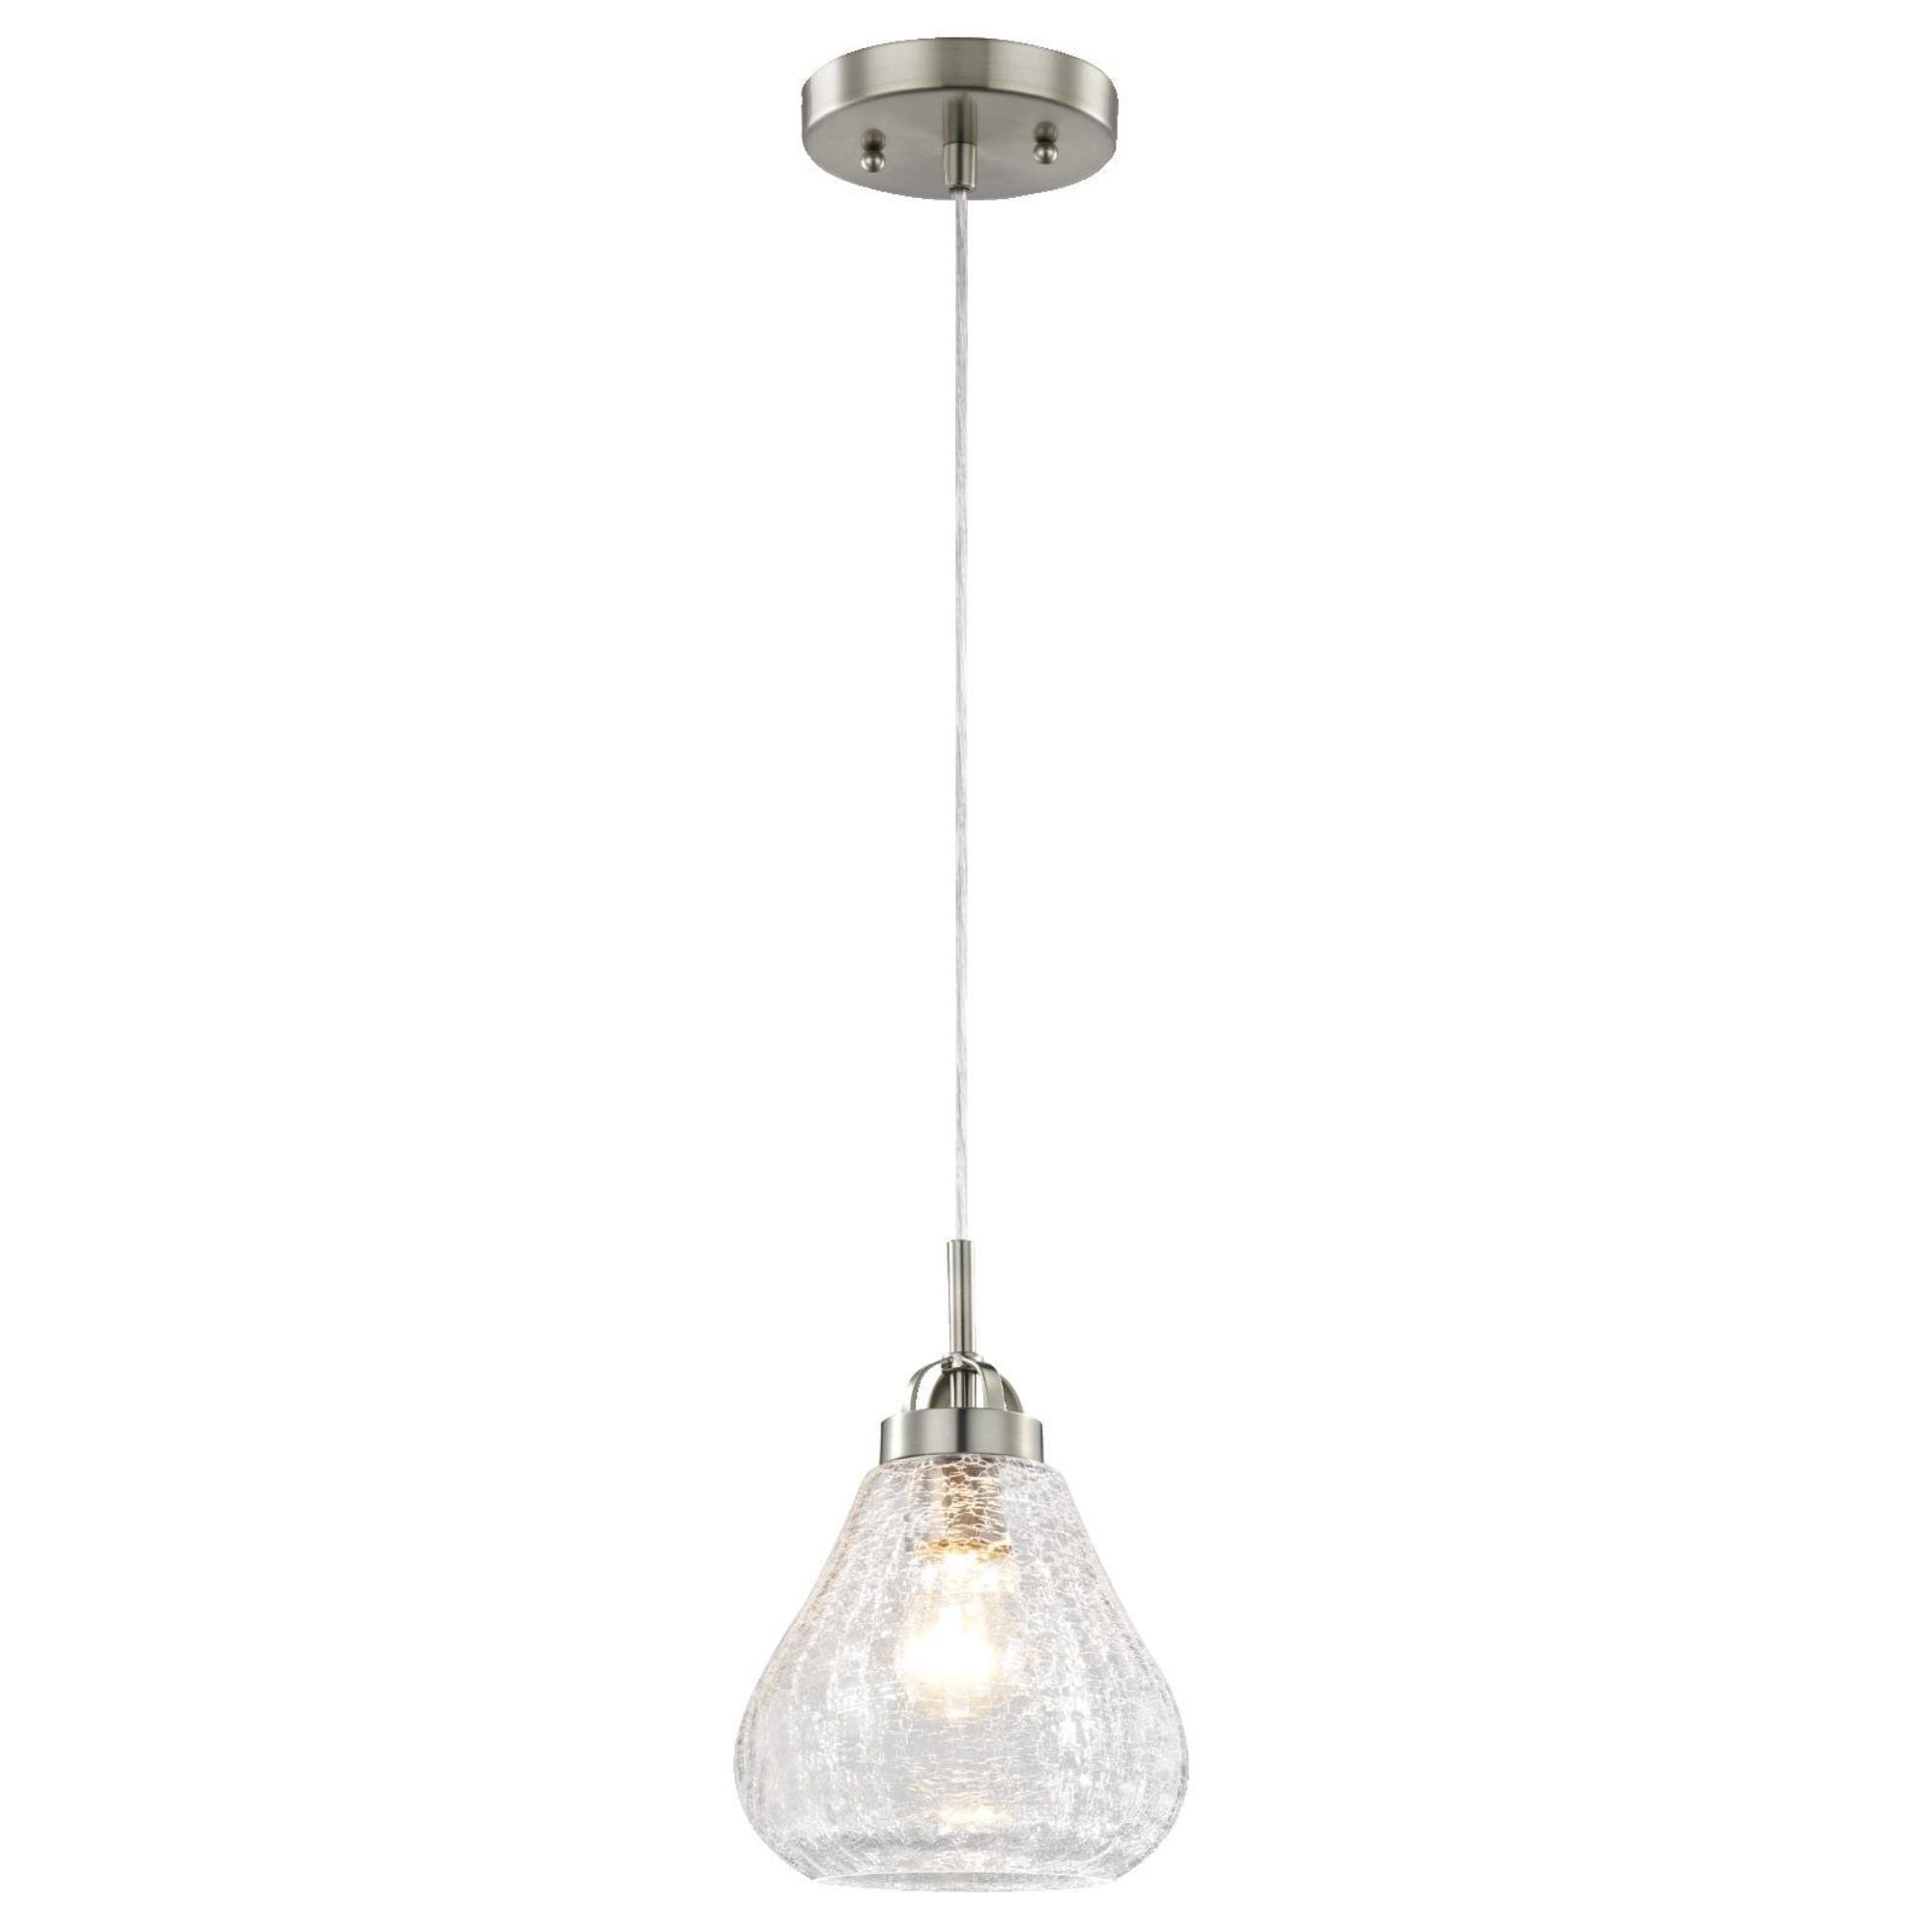 6309100 One-Light Indoor Mini Pendant, Brushed Nickel Finish with Clear Crackle Glass